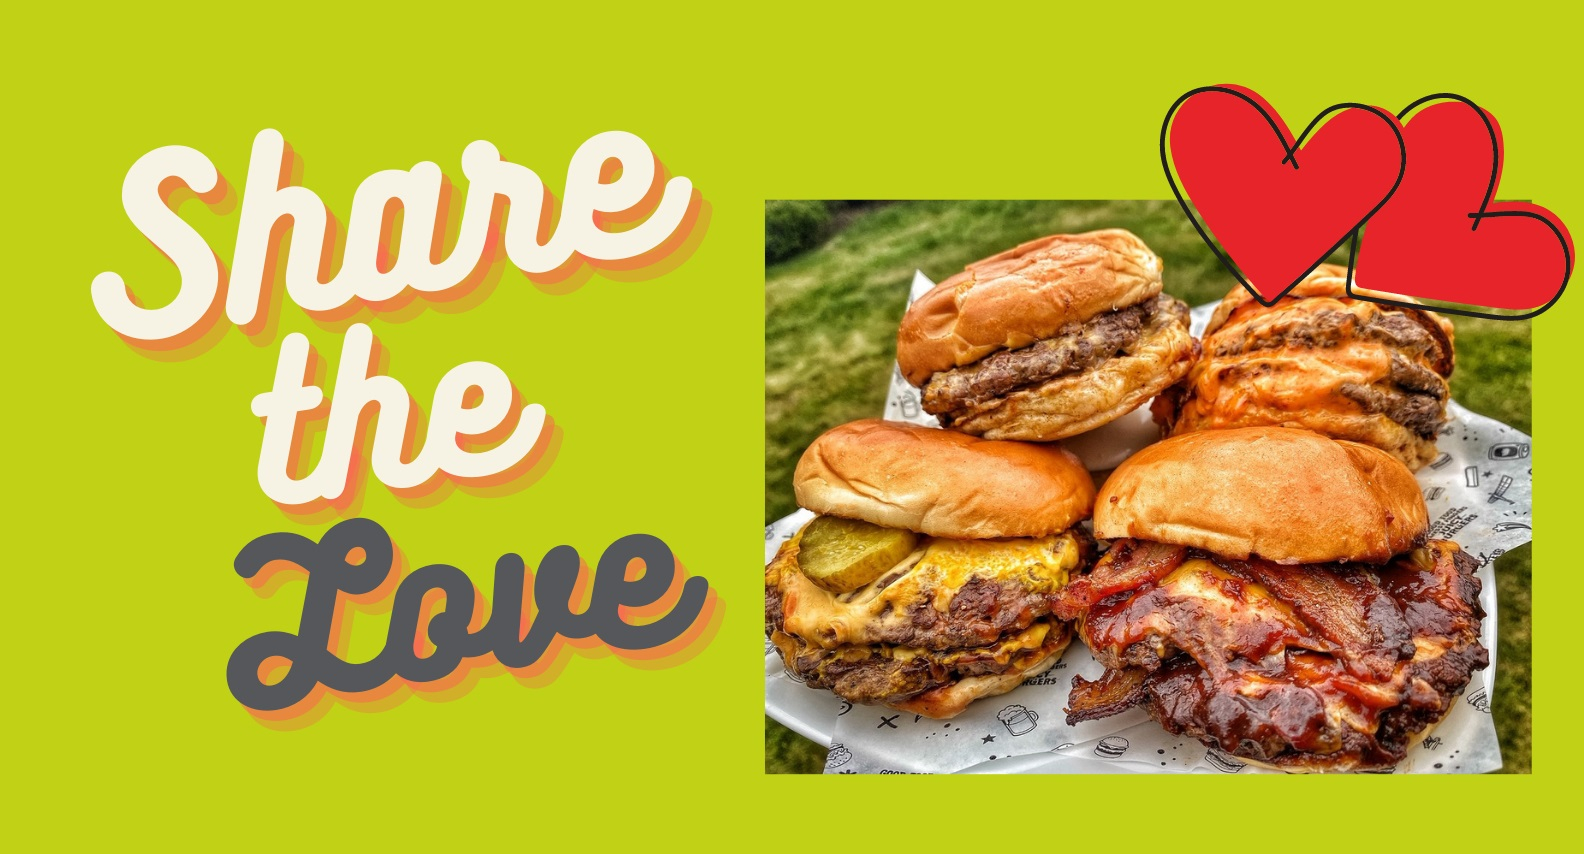 Share the love burger competition